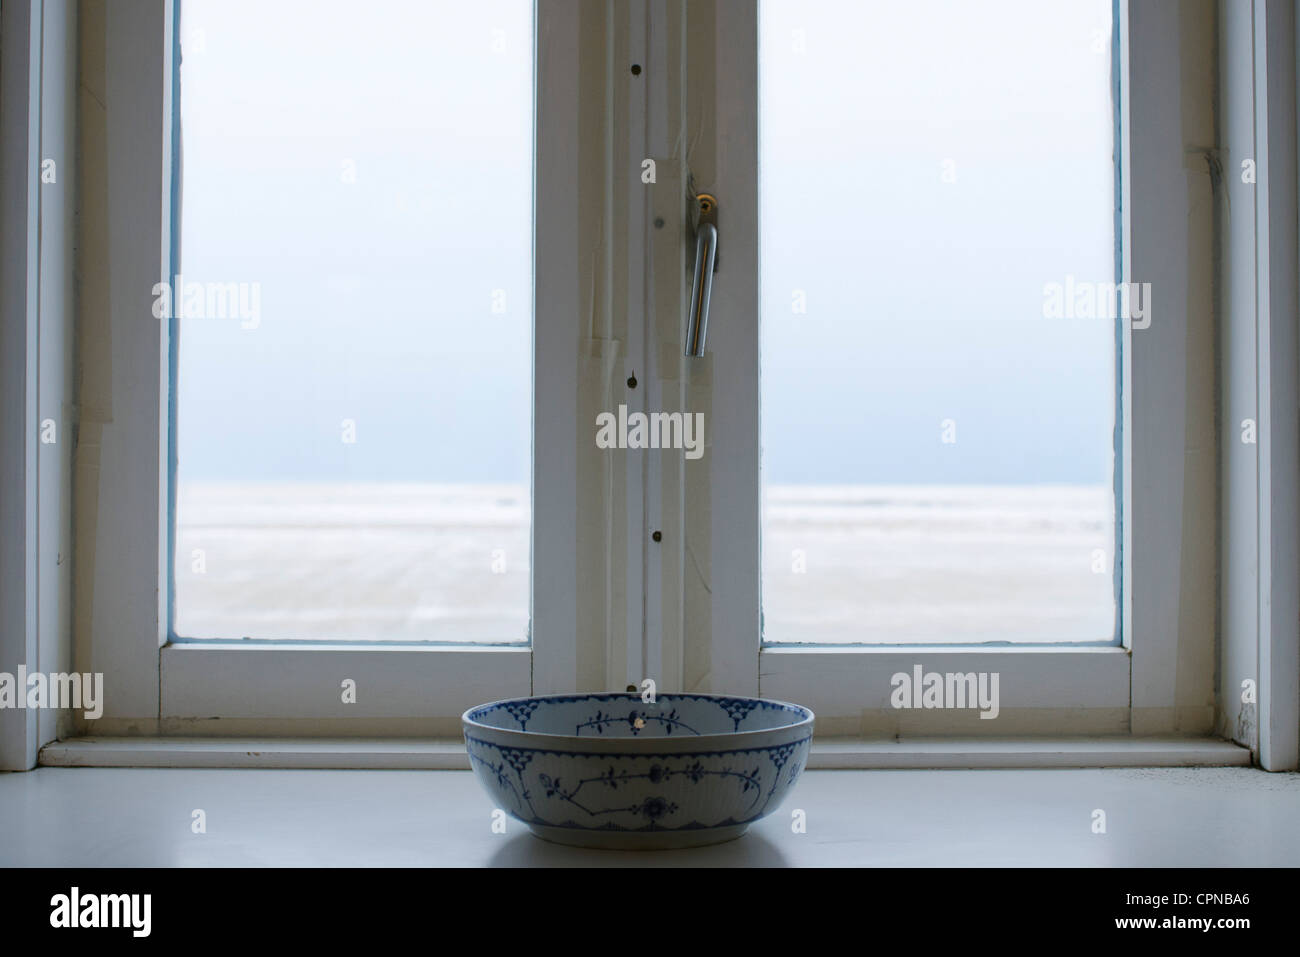 Ceramic bowl in front of window - Stock Image